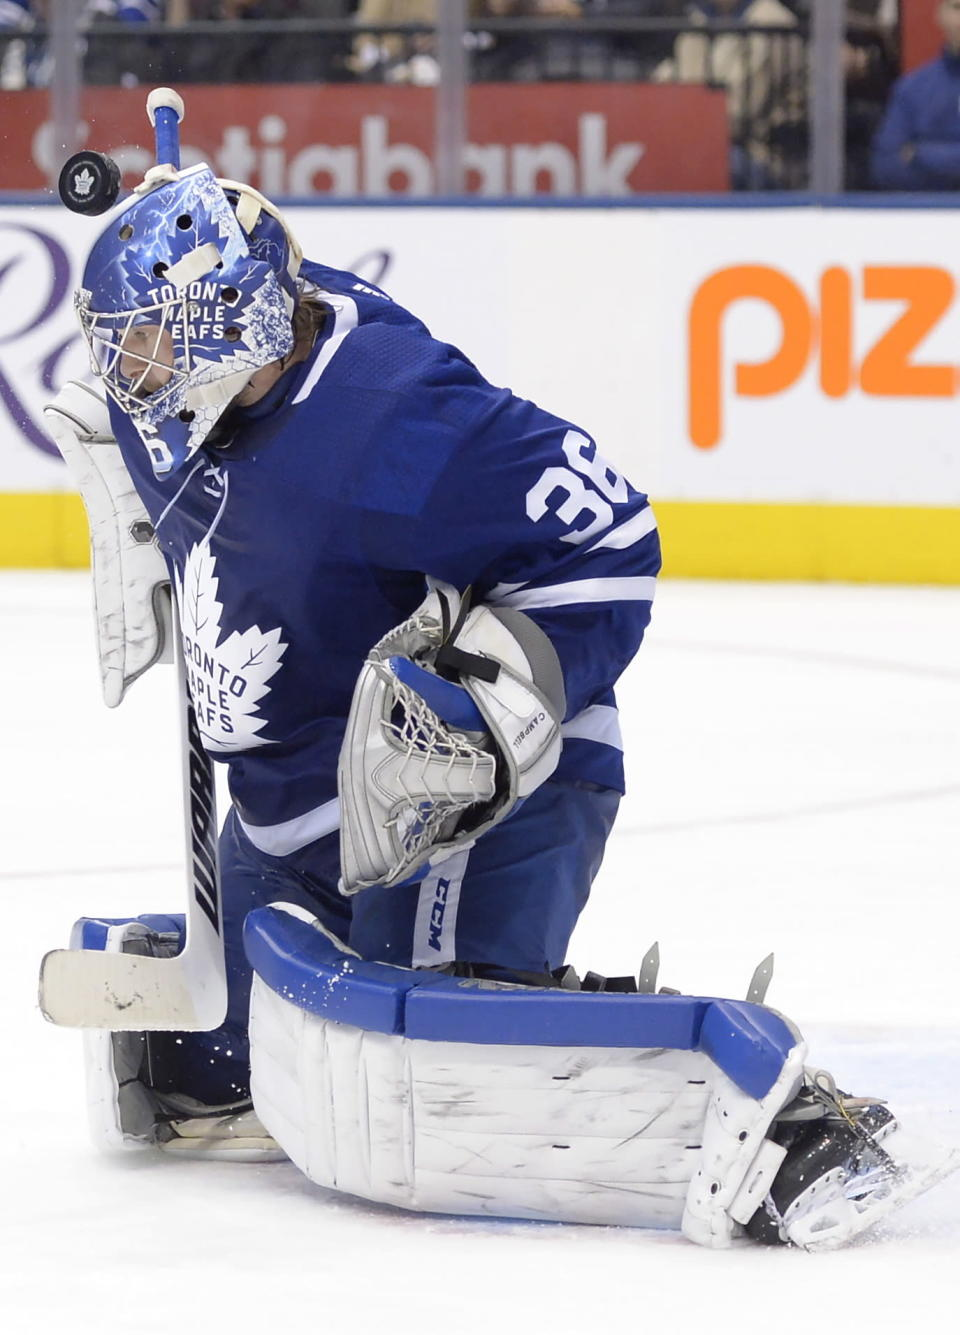 Toronto Maple Leafs goaltender Jack Campbell (36) makes a save agaonst the Arizona Coyotes during the third period of an NHL hockey game, Tuesday, Feb. 11, 2020 in Toronto. (Nathan Denette/The Canadian Press via AP)